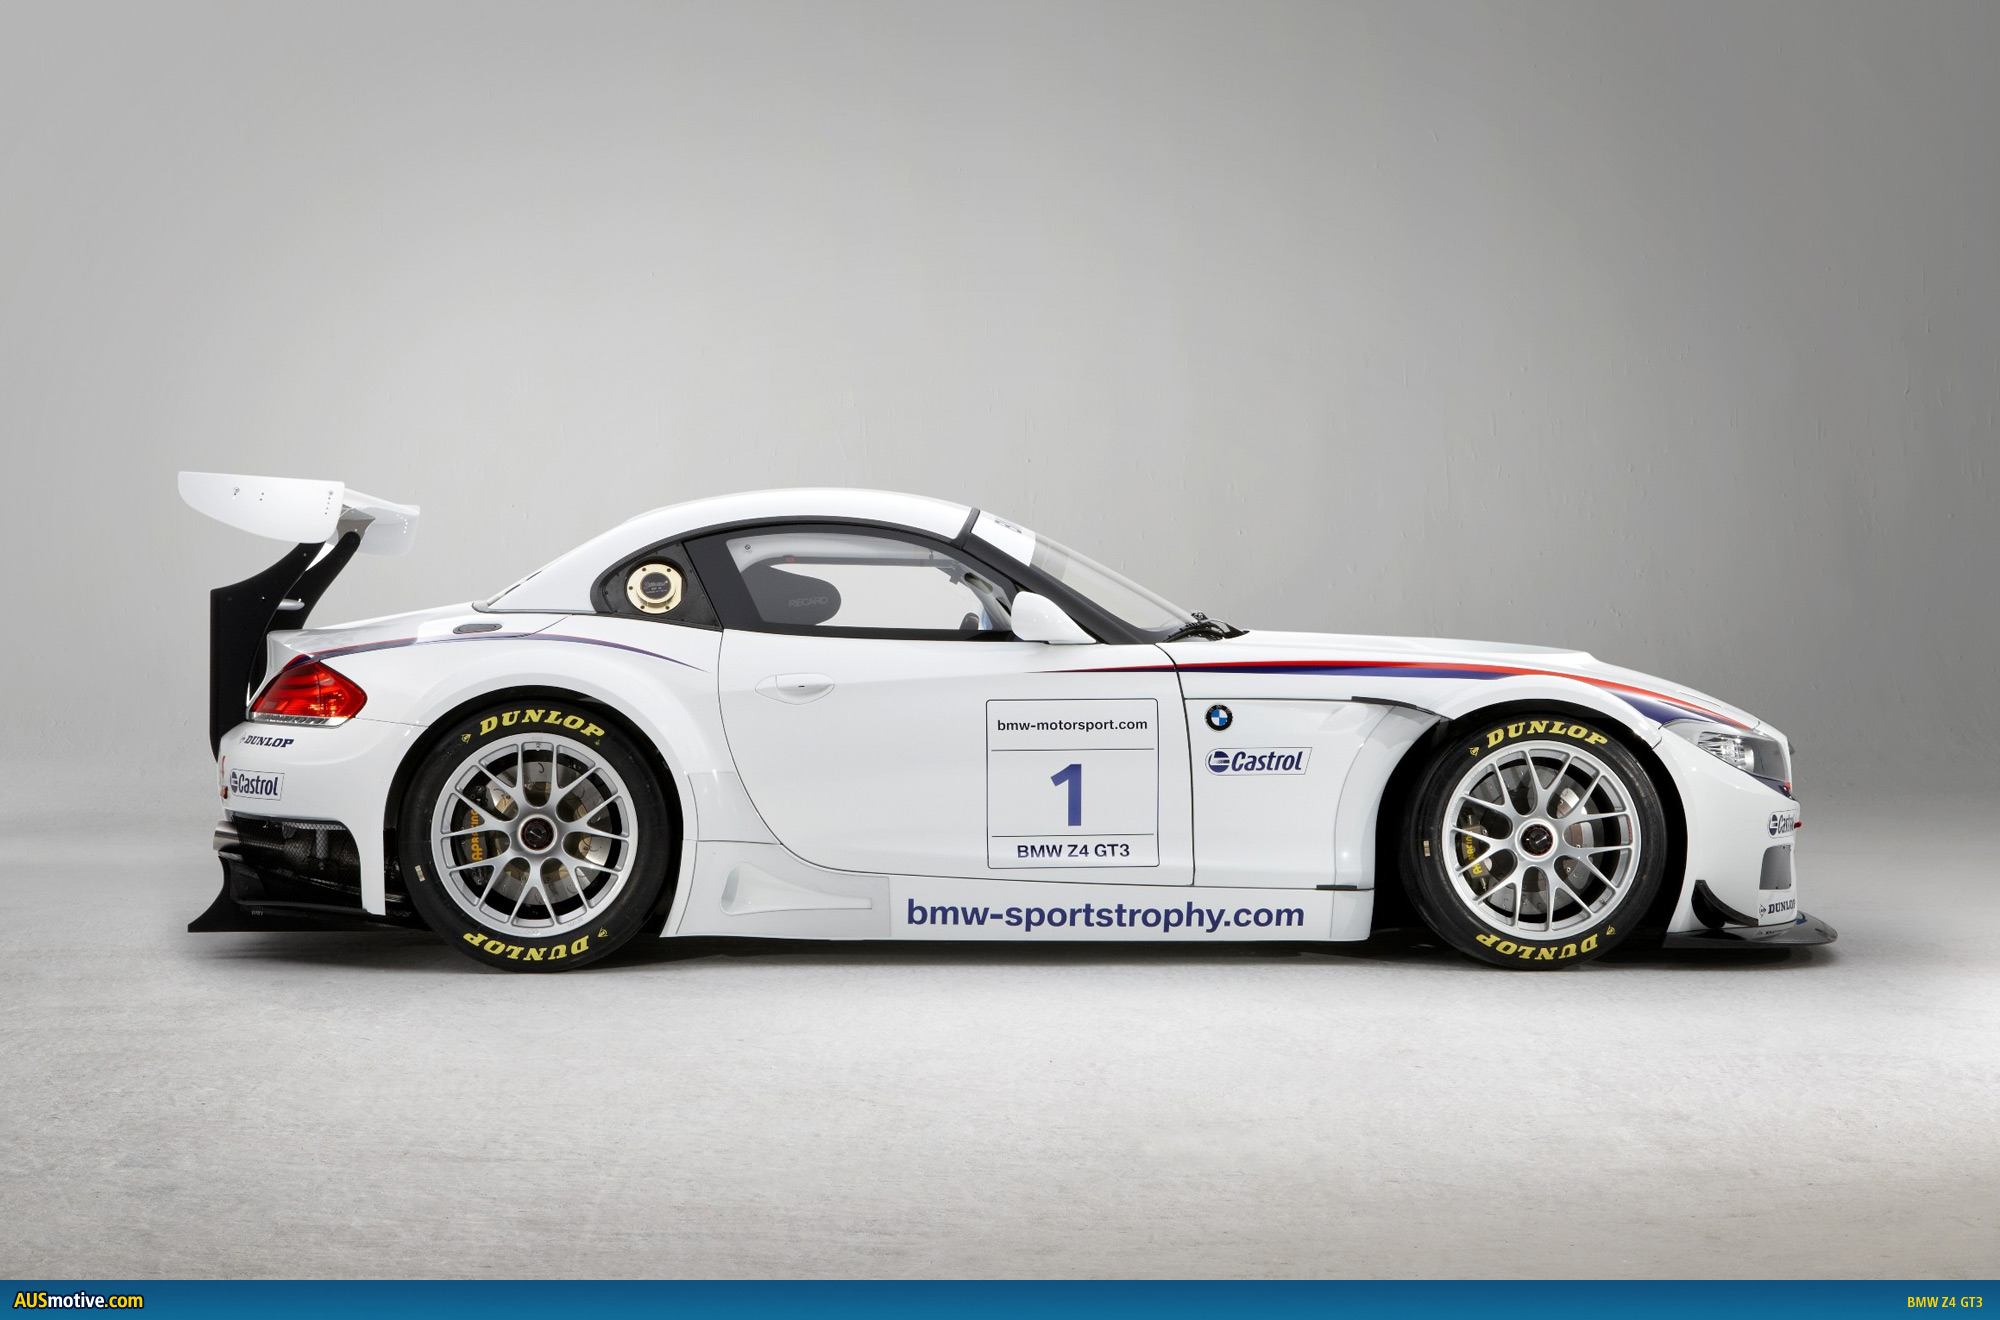 bmw finally reveals official z4 gt3 info. Black Bedroom Furniture Sets. Home Design Ideas